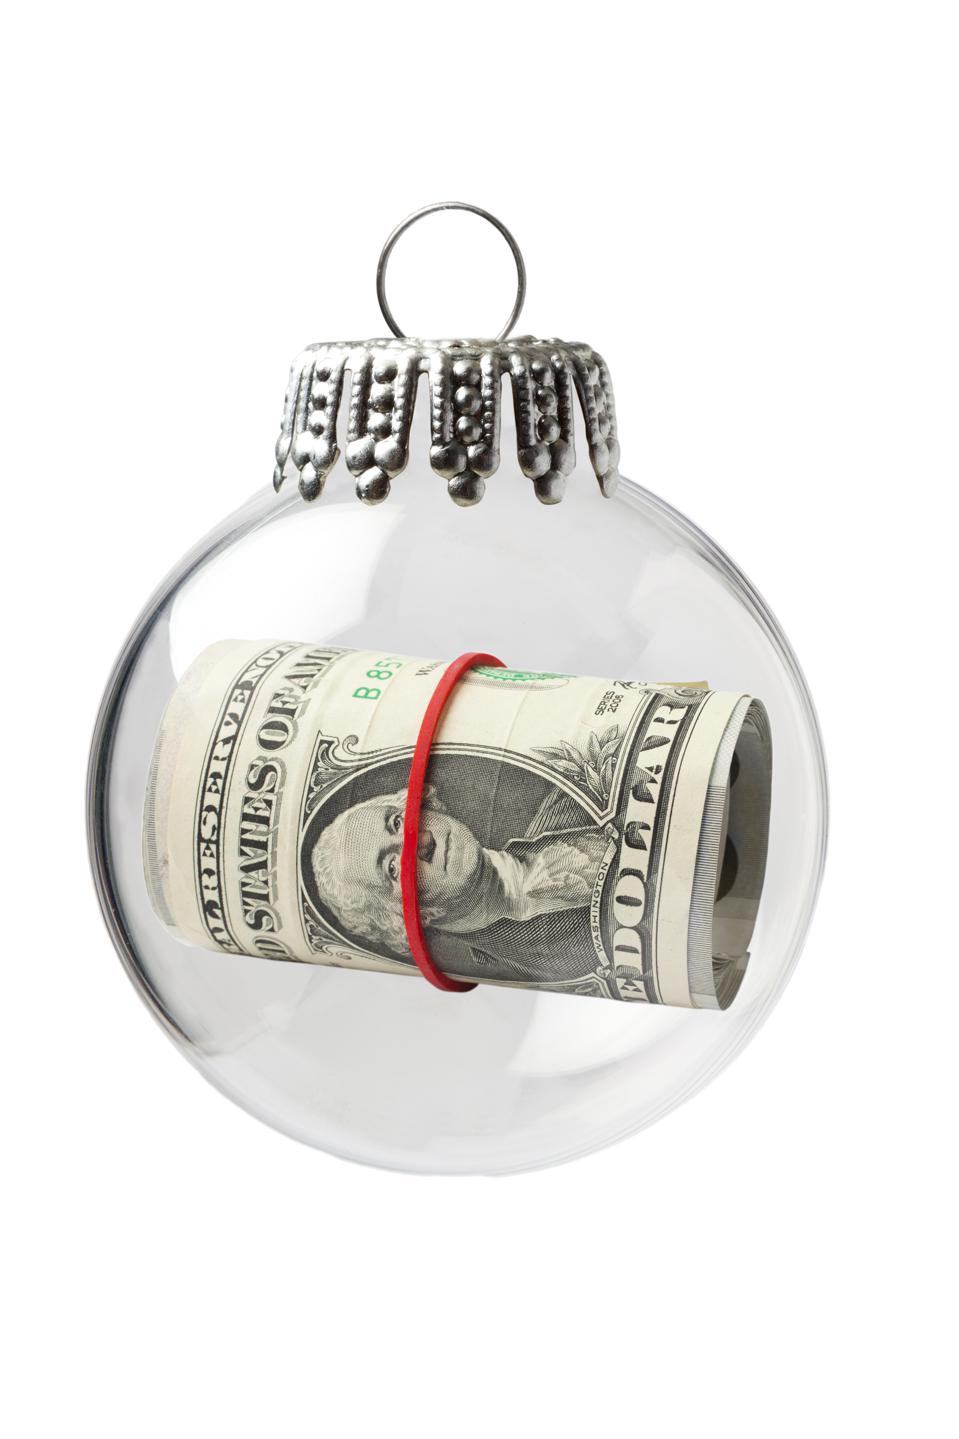 US Paper Currency in a Christmas Ornament